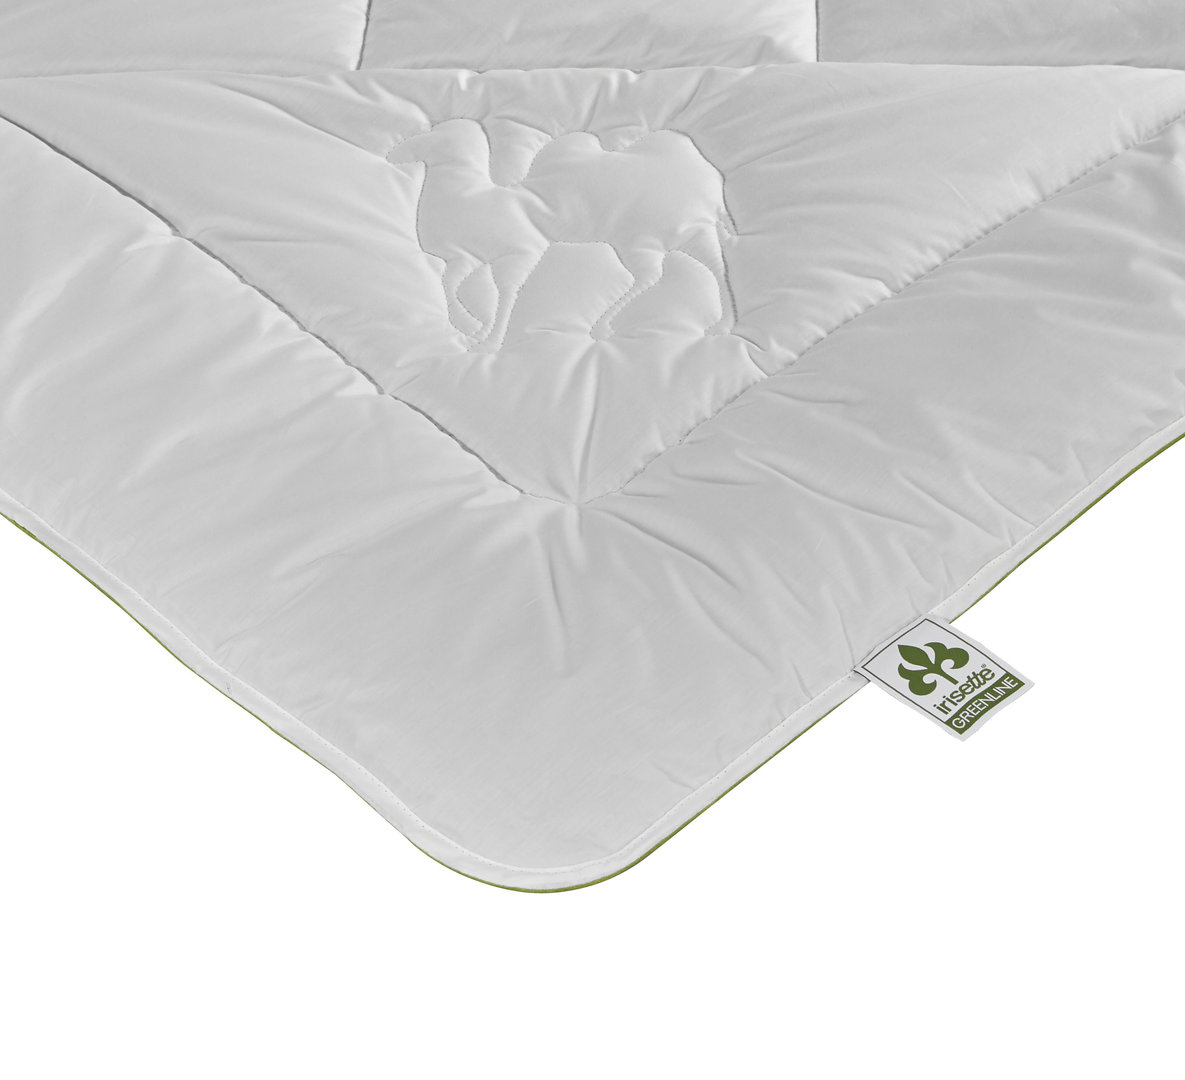 Irisette Steppbett Greenline Kamel Eco Duo 135x200cm Bettenshop Deluxe